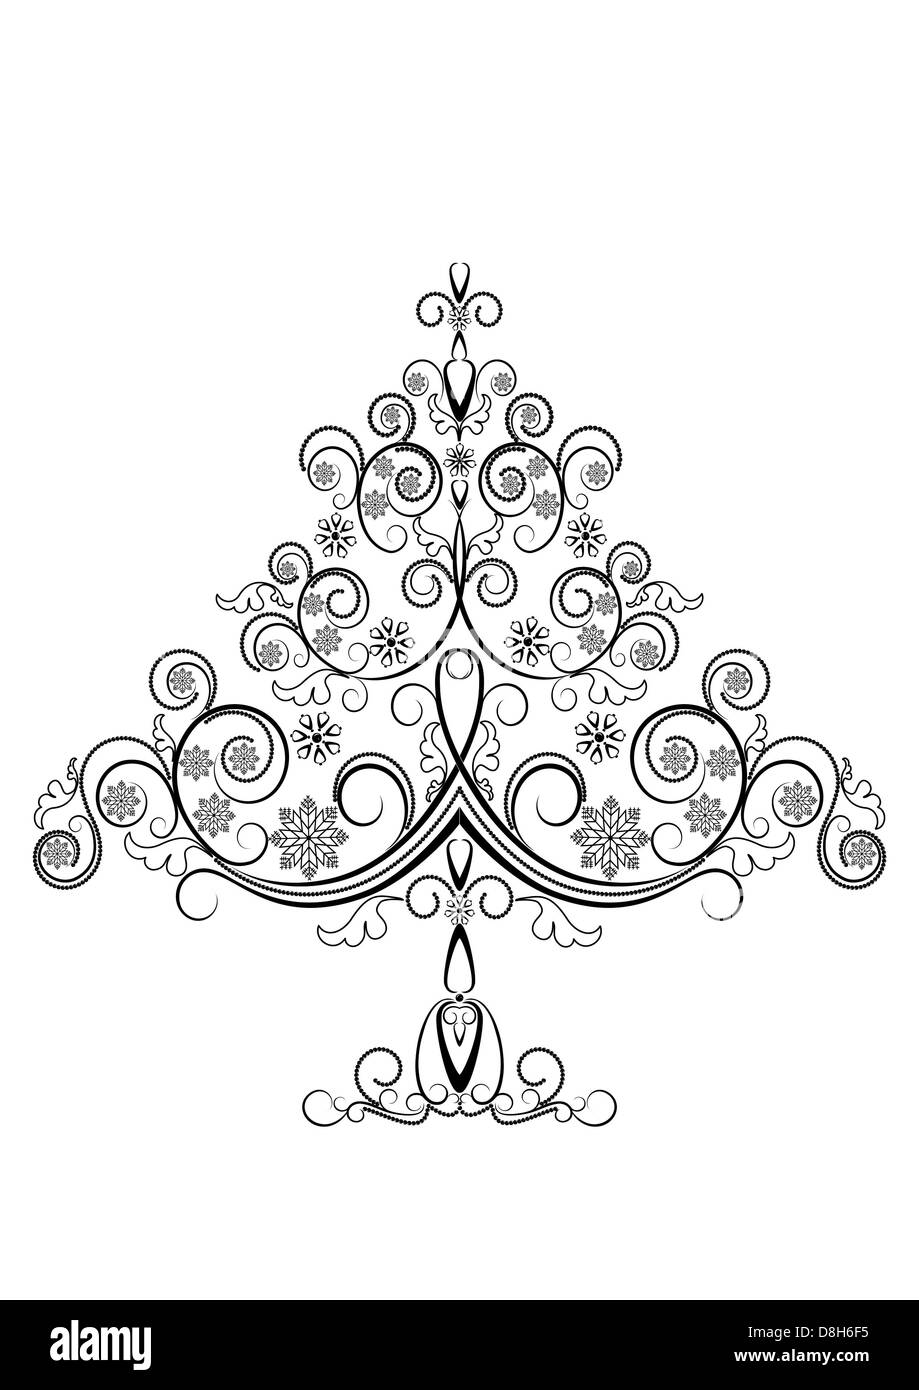 Openwork Christmas tree with snowflakes - Stock Image